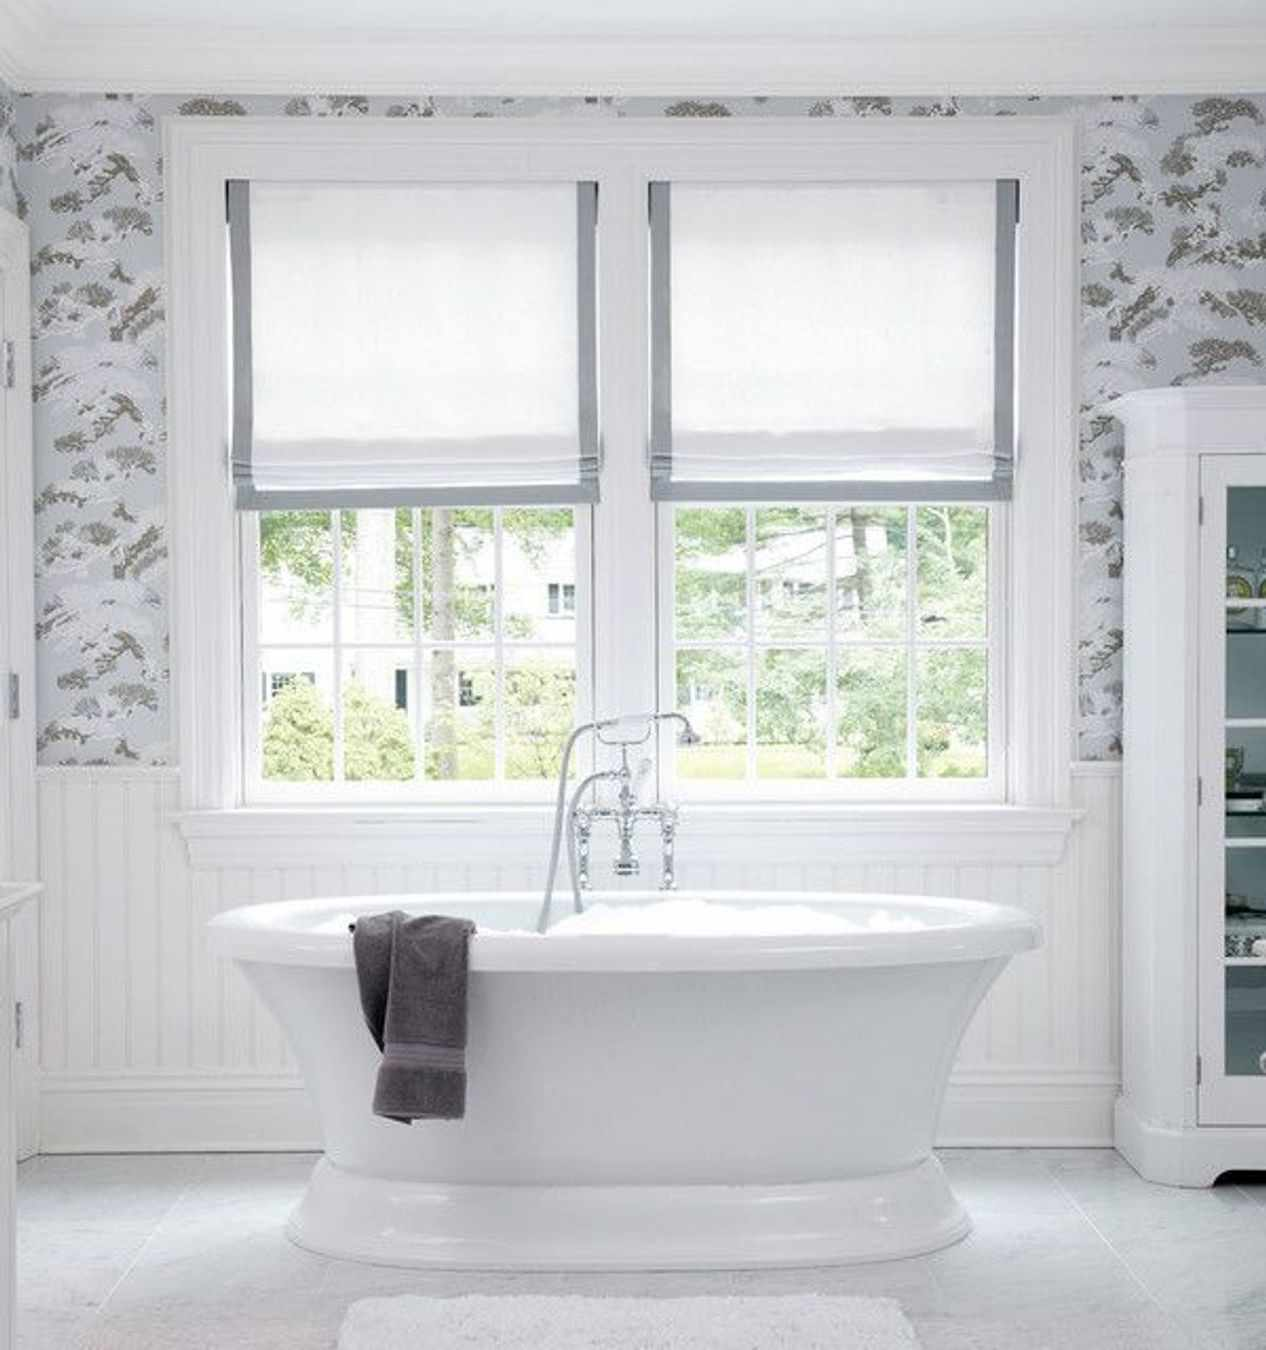 Modern bathroom window curtain ideas - Grey Bathroom Curtains Nice White And Grey Roman